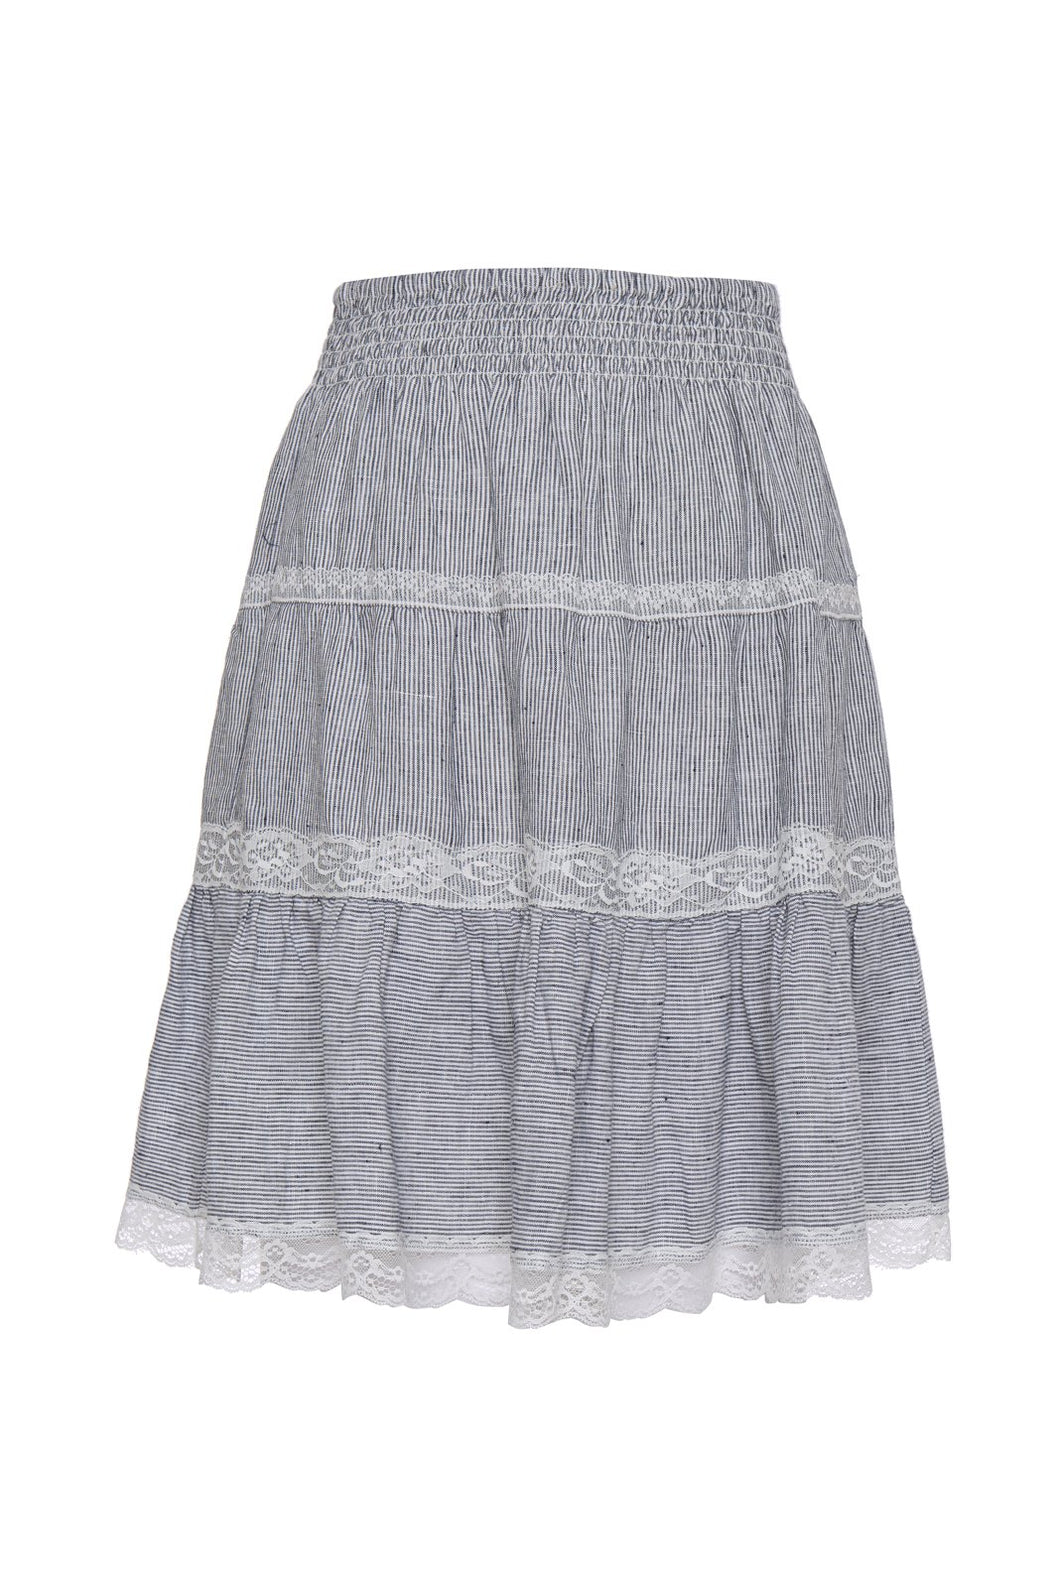 Goldhawk Rosie Linen Skirt, - Funky Collective